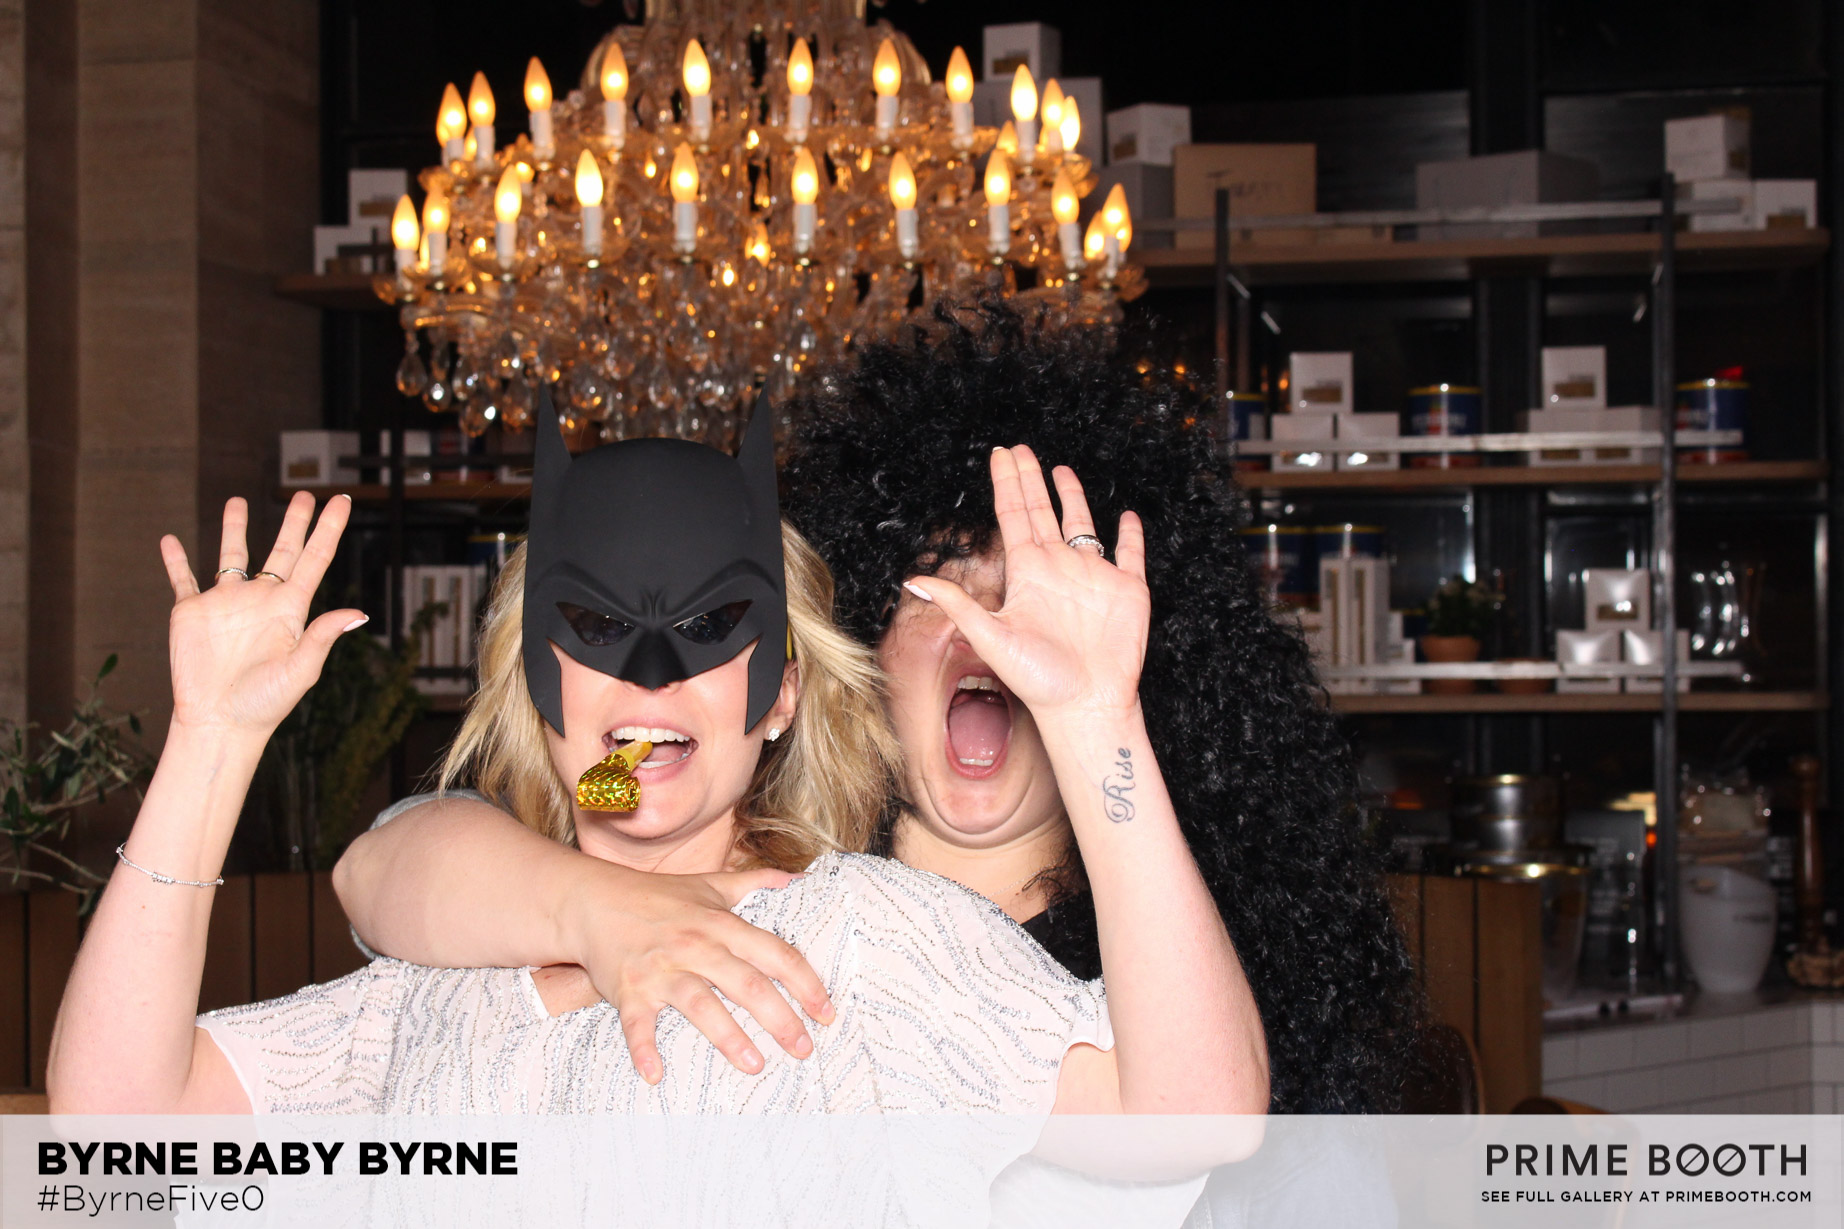 Private party photo booth at terroni downtown la photo booth terroni downtown los angeles photo booth 3 arubaitofo Choice Image